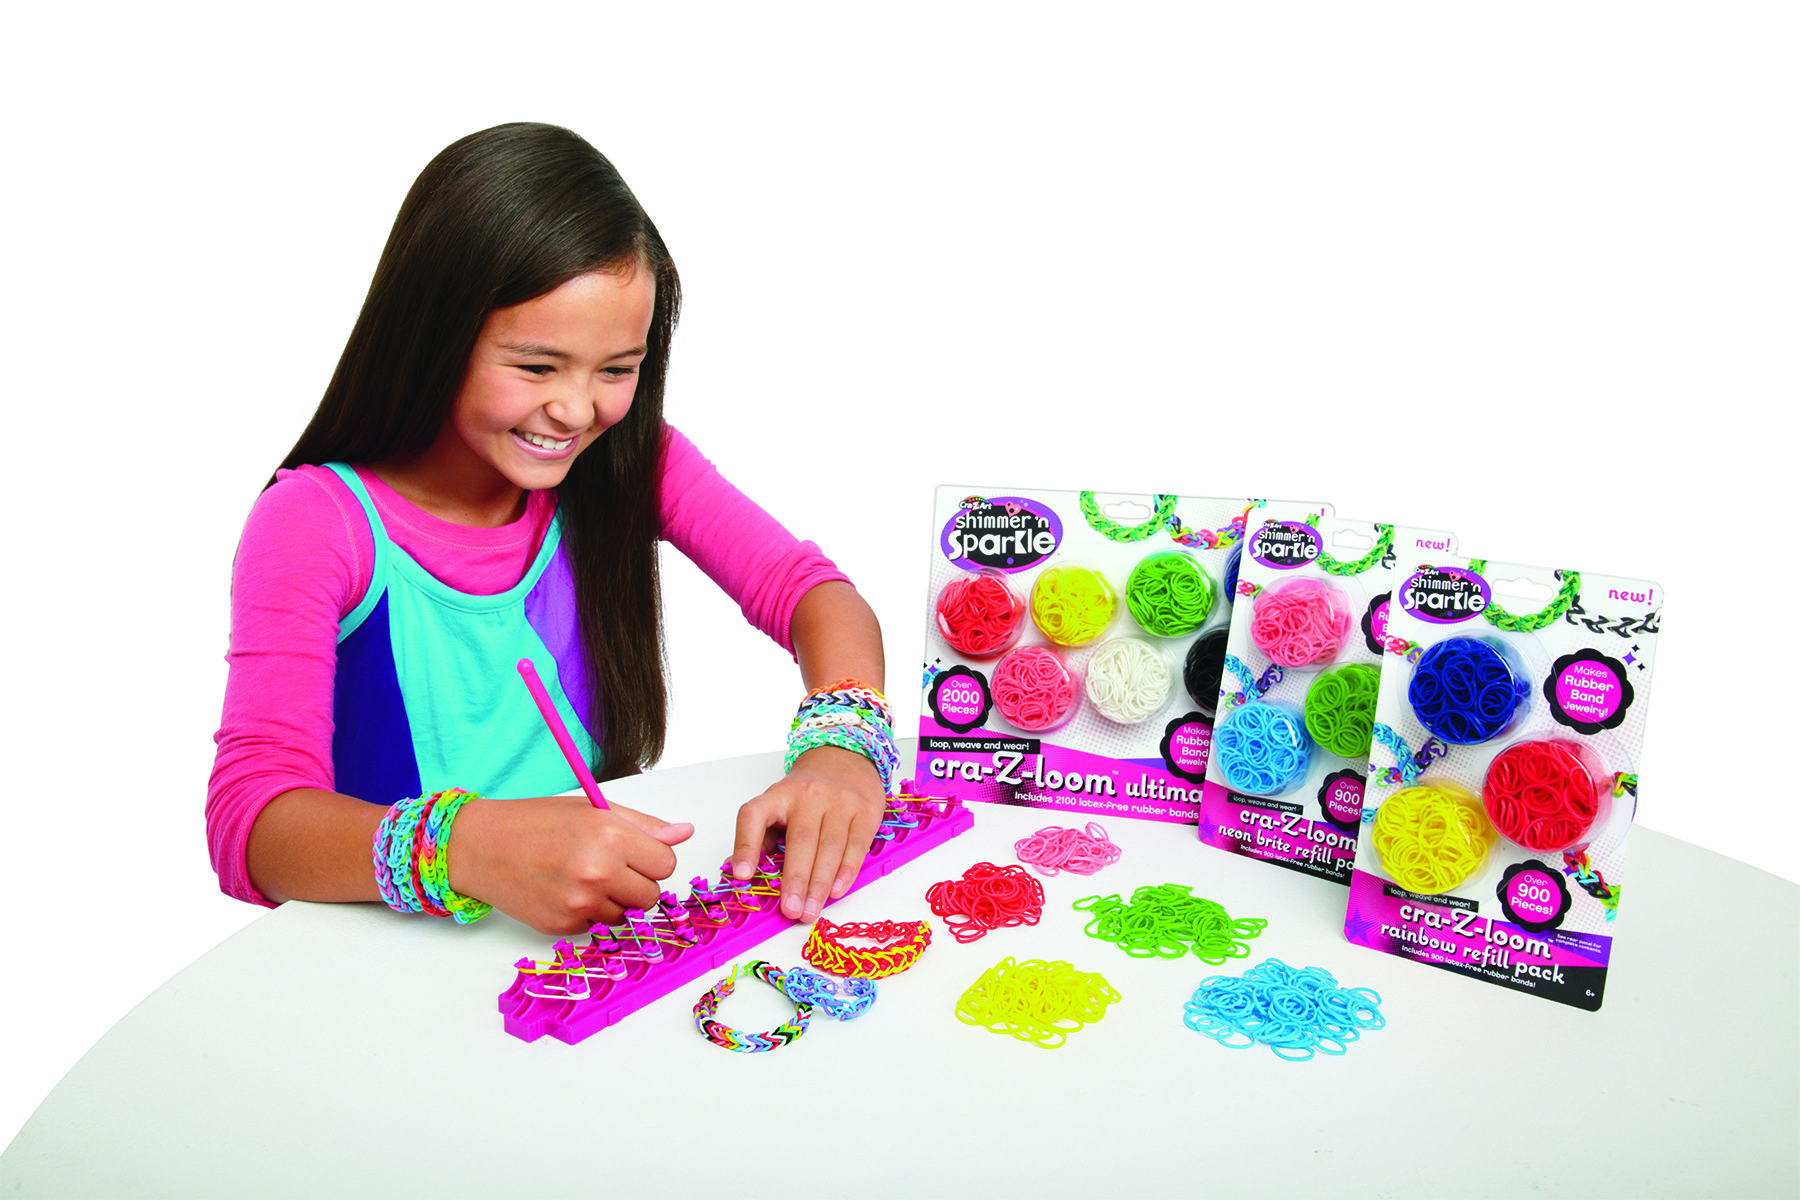 The Shimmer N Sparkle Cra Z Loom Rubber Band Bracelet Maker Turns Everyday Objects Into One Of A Kind Jewelry Statements 14 99 Toys R Us Bel Air